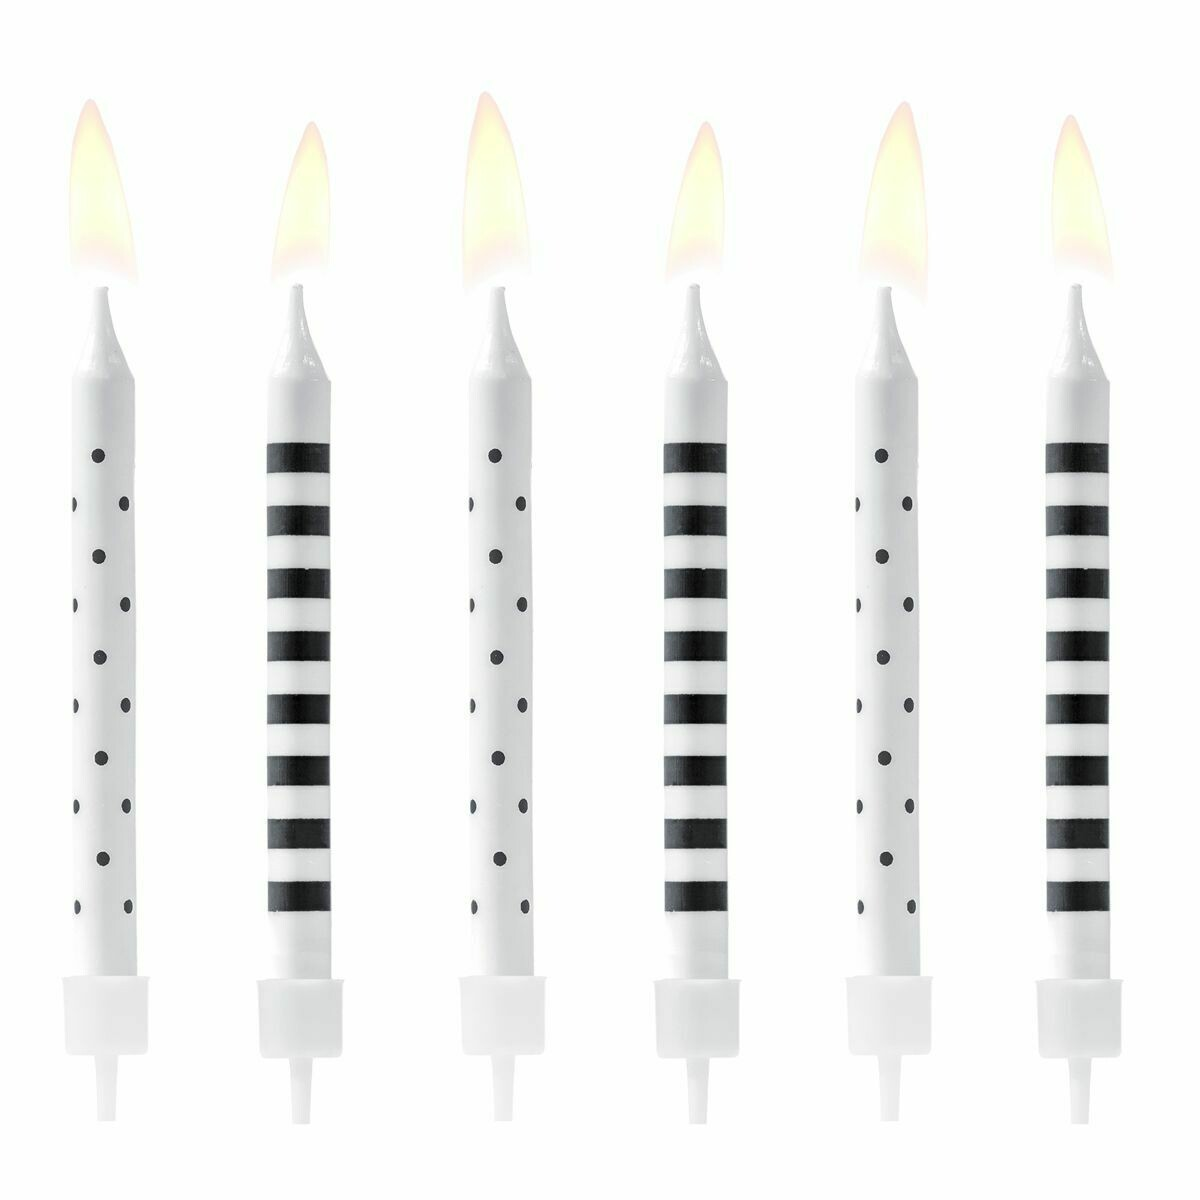 PartyDeco Birthday Candles Dots & Stripes -BLACK/WHITE 6 τεμ - Ασπρόμαυρα κεράκια